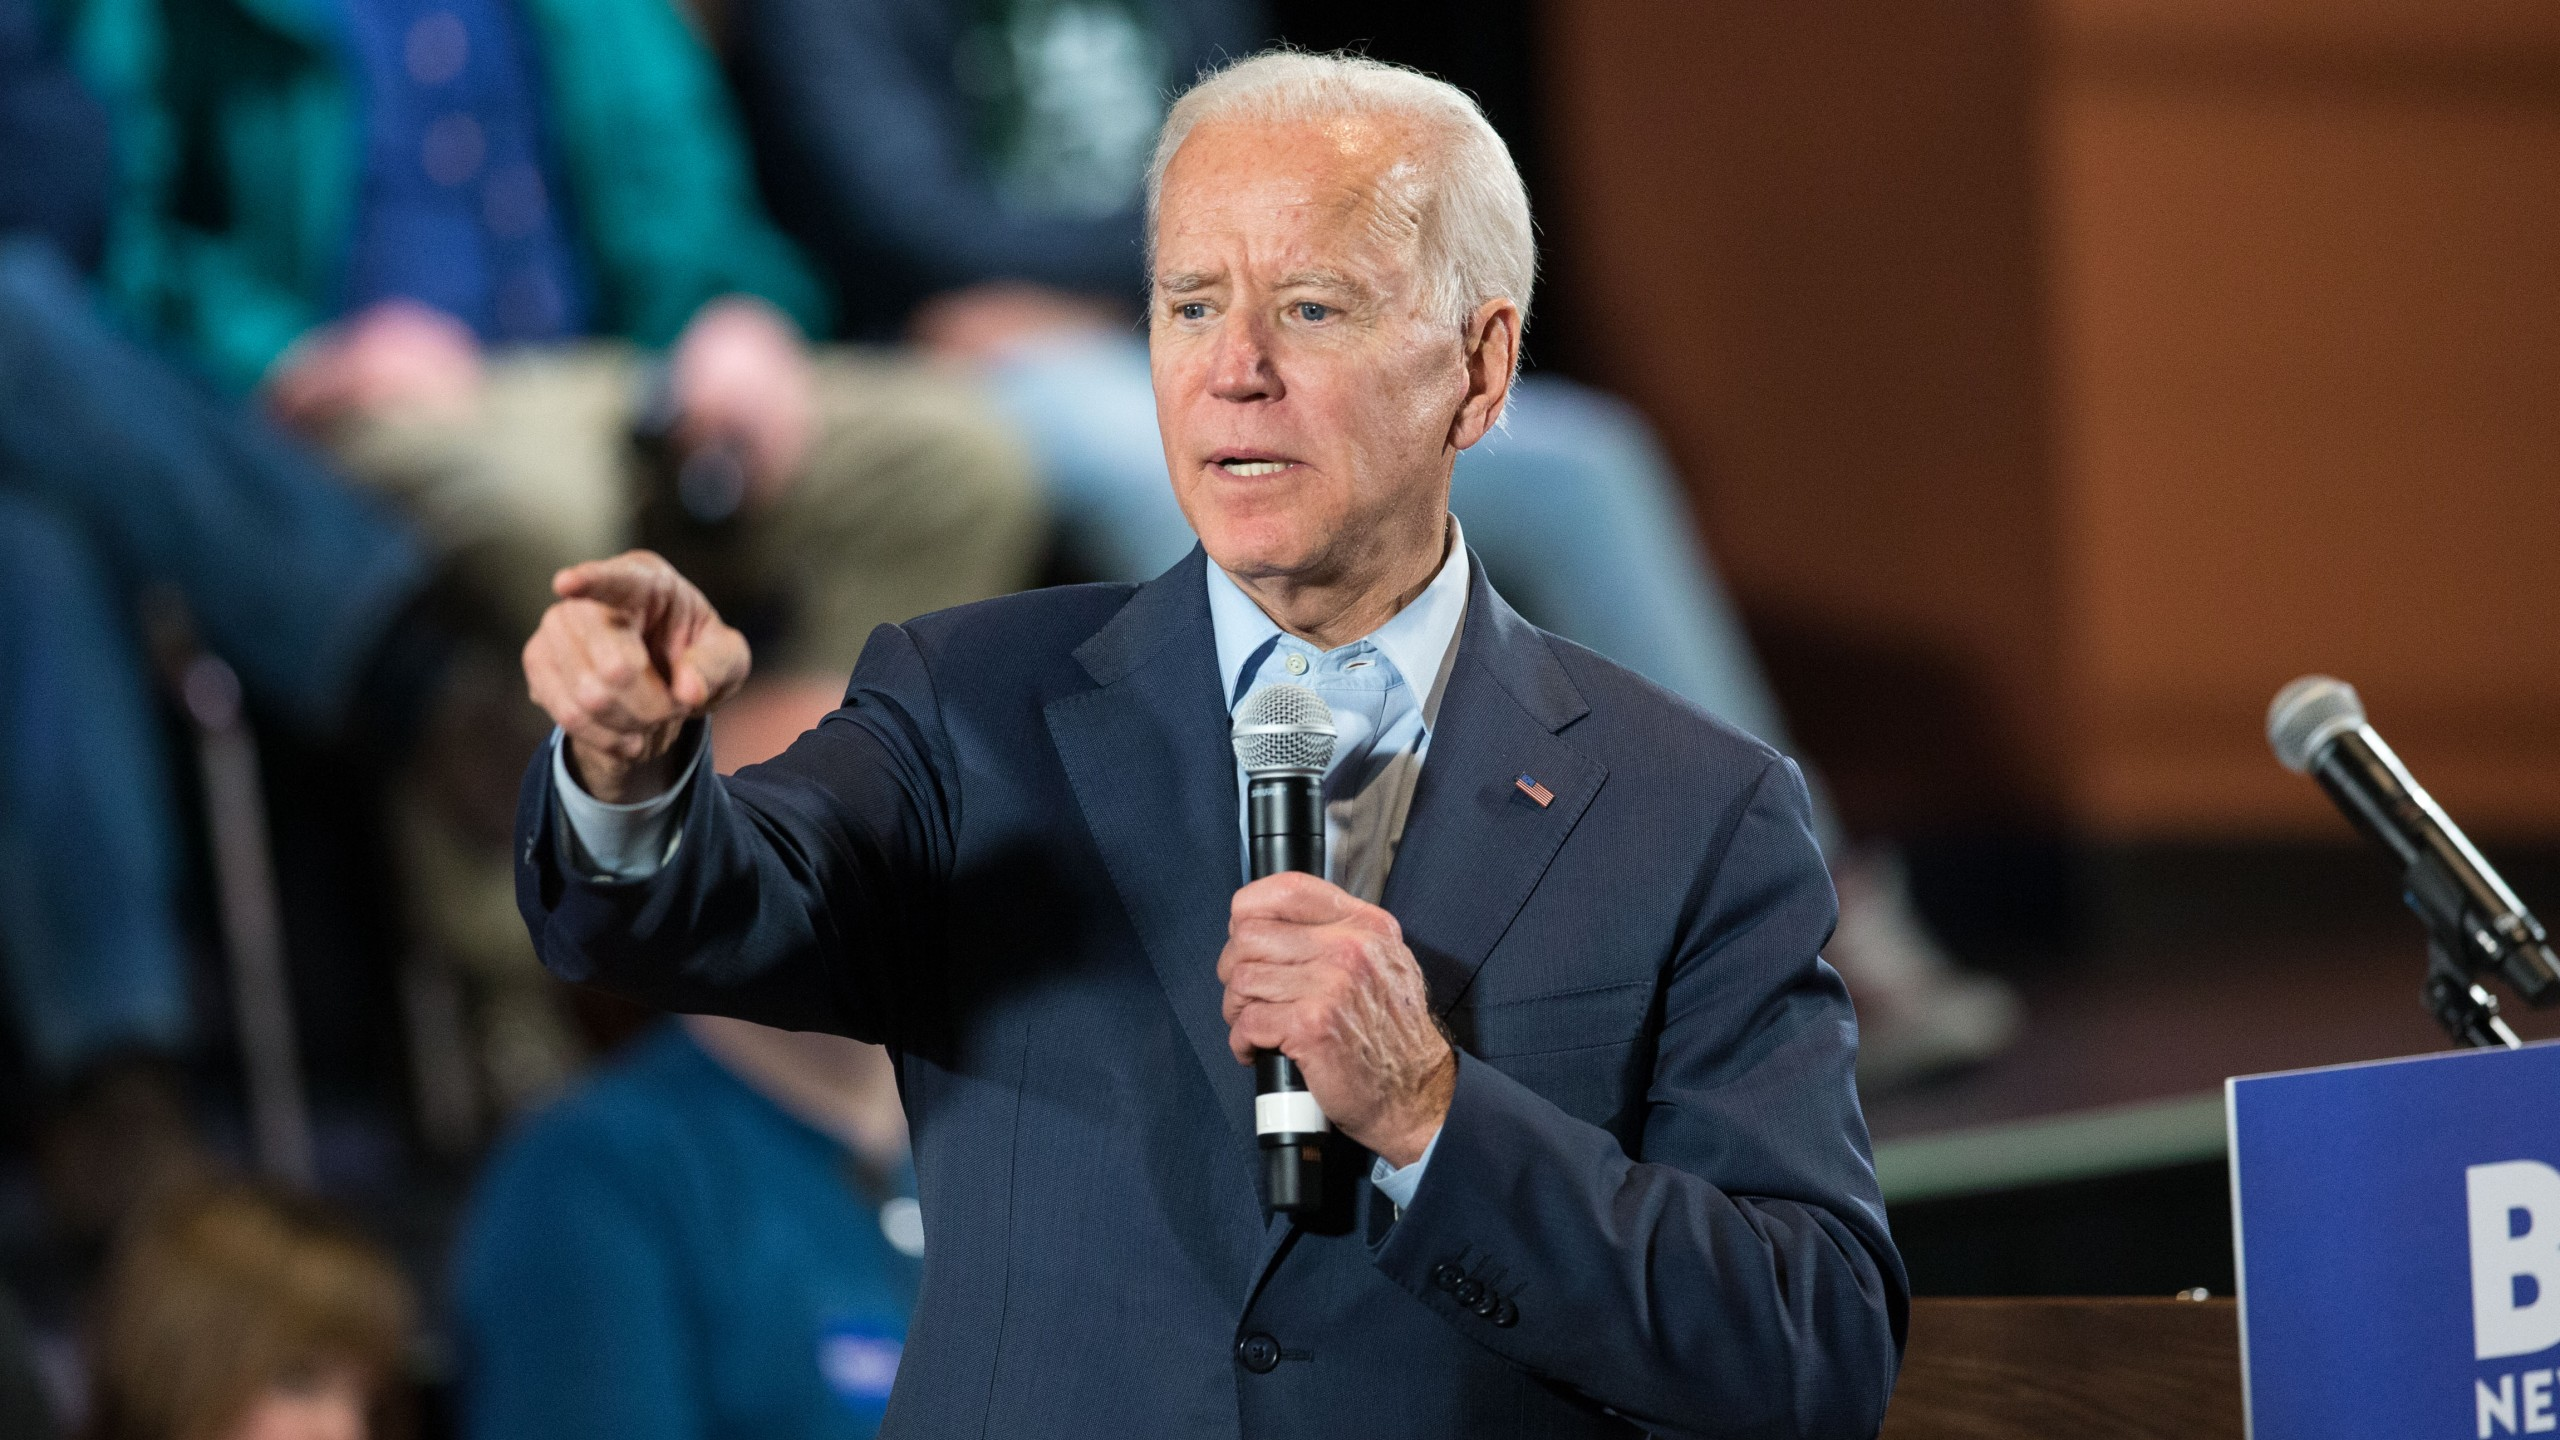 Democratic presidential candidate, former Vice President Joe Biden points to a member of the crowd who wanted to ask a question during a campaign Town Hall on Dec. 30, 2019 in Derry, New Hampshire. (Credit: Scott Eisen/Getty Images)